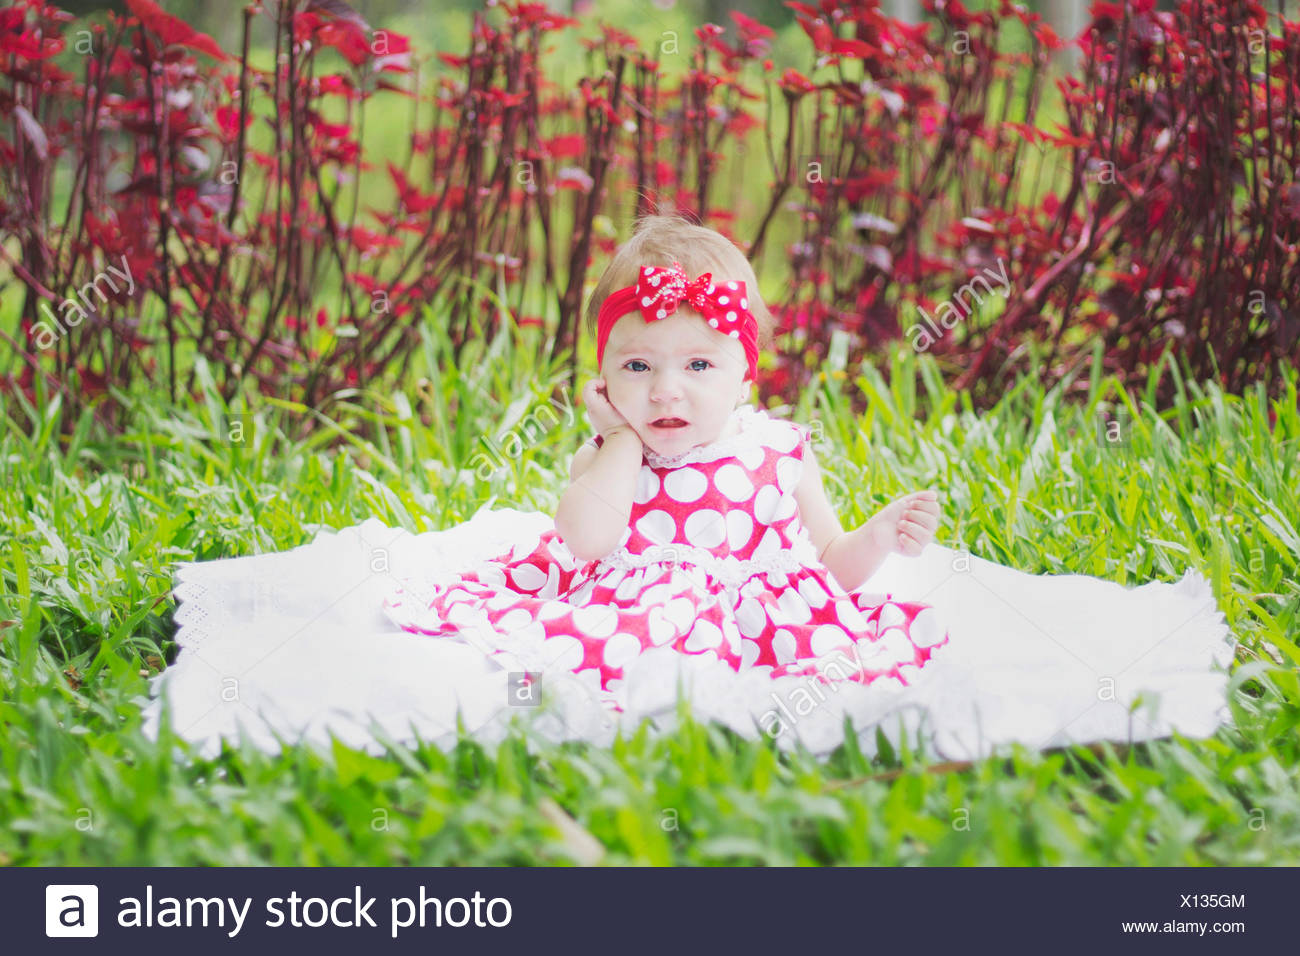 Portrait Of A Pretty Baby Girl Sitting On Grassland - Stock Image